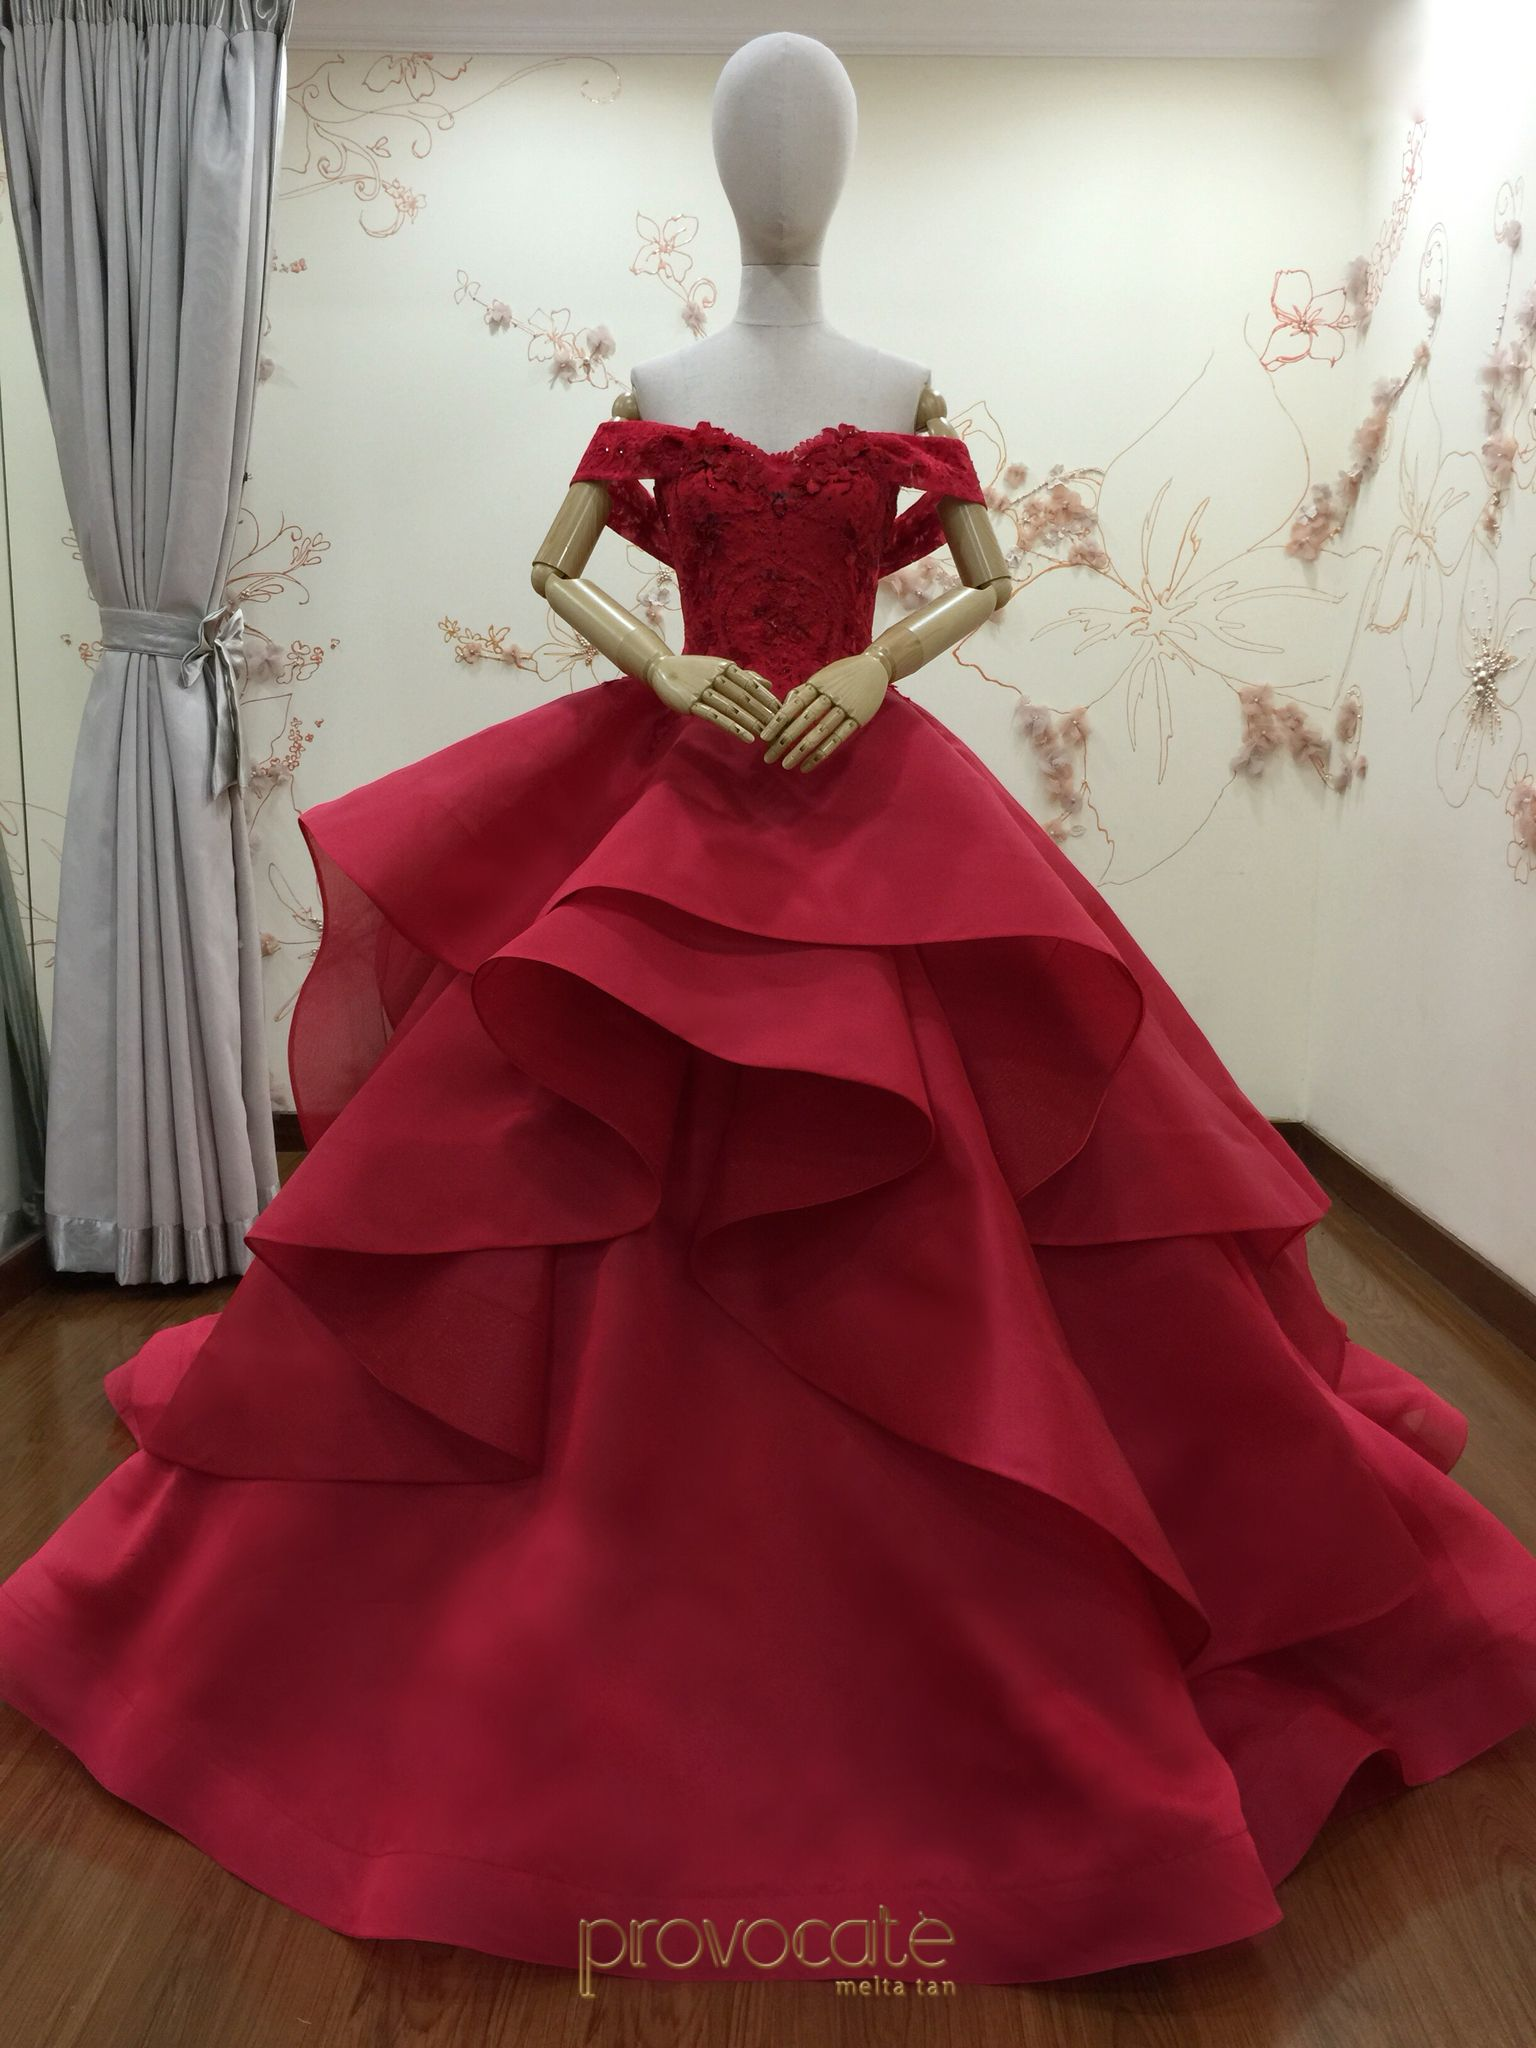 introducing our new collection fairytale off shoulder royal red